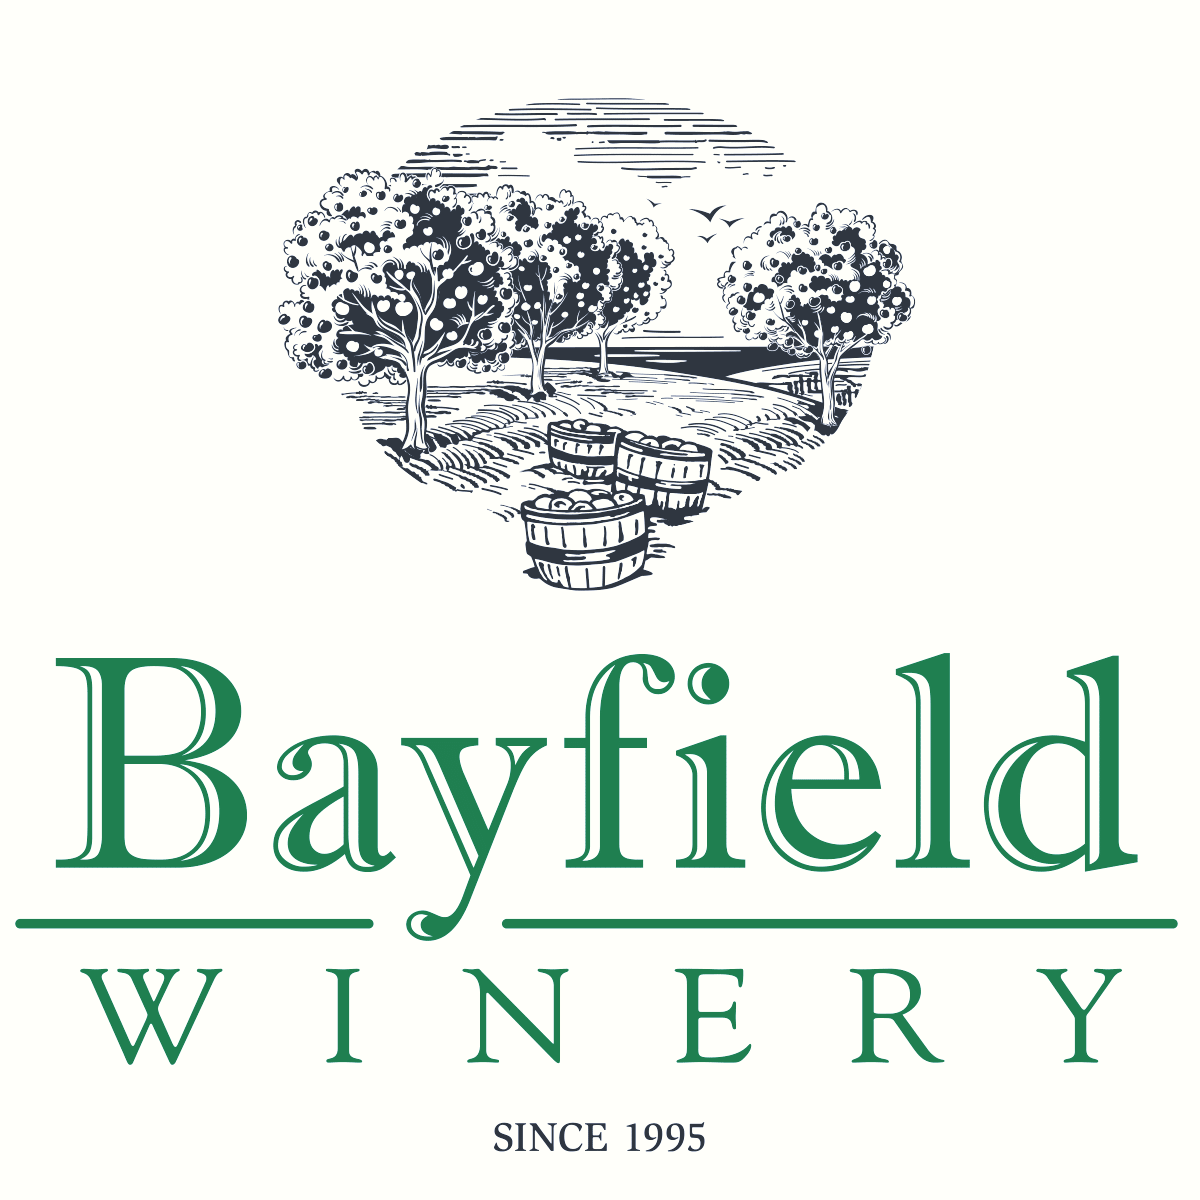 Bayfield Winery & The Orchard - Bayfield Winery has been producing Bayfield apple & fruit wines for over 20 years. Originally established in 1995 by Scott and Renate Hauser on Hauser's Superior View Farm, now located on their own farm. The location may have changed, but the apples remain the same.